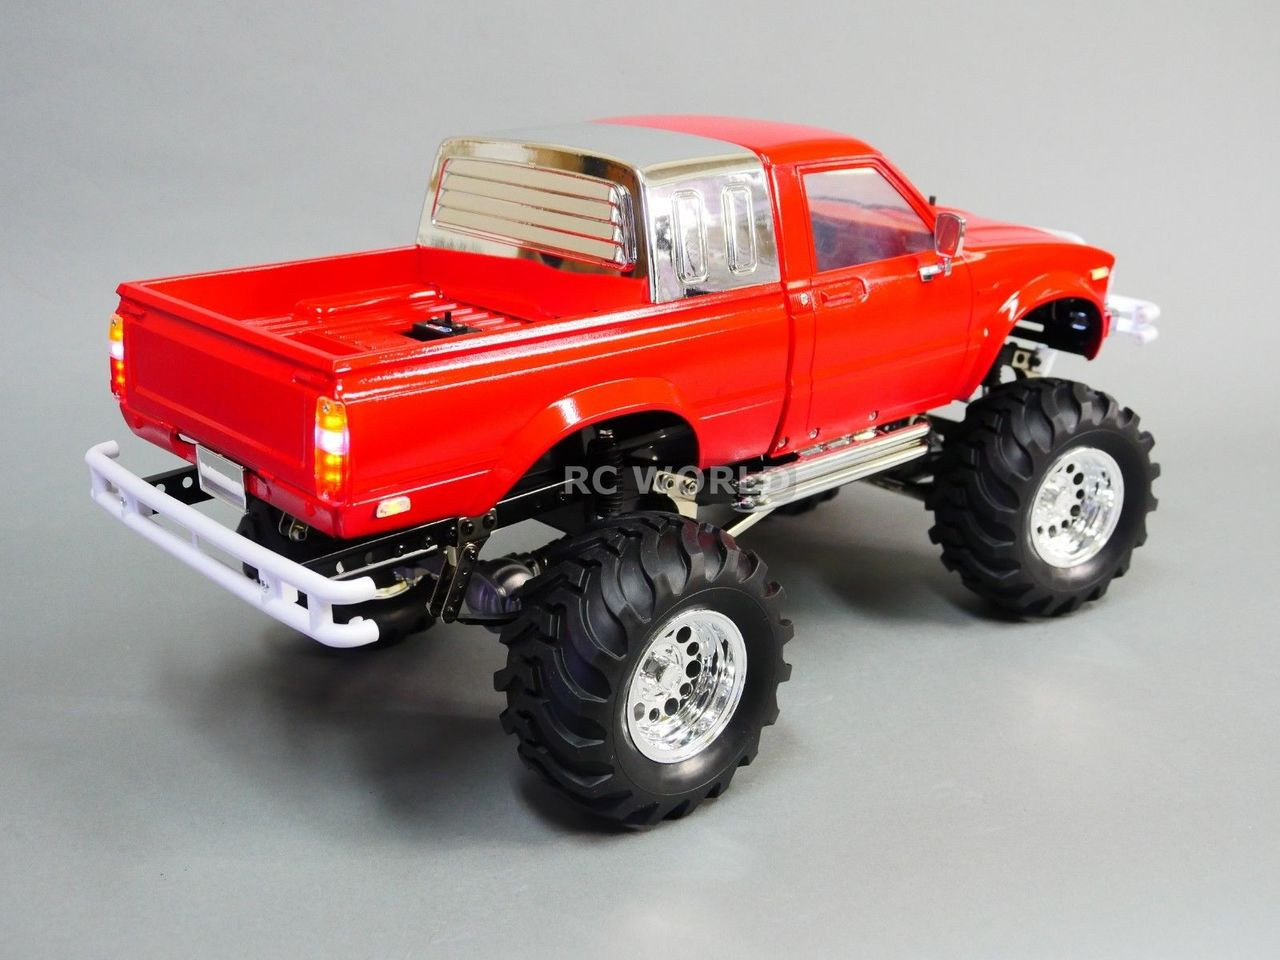 Toyota Pickup 4x4 >> Rc 1 10 Scale Truck Toyota Pickup Bruiser Clone 4x4 Rc Truck 2 Speed Rtr Red